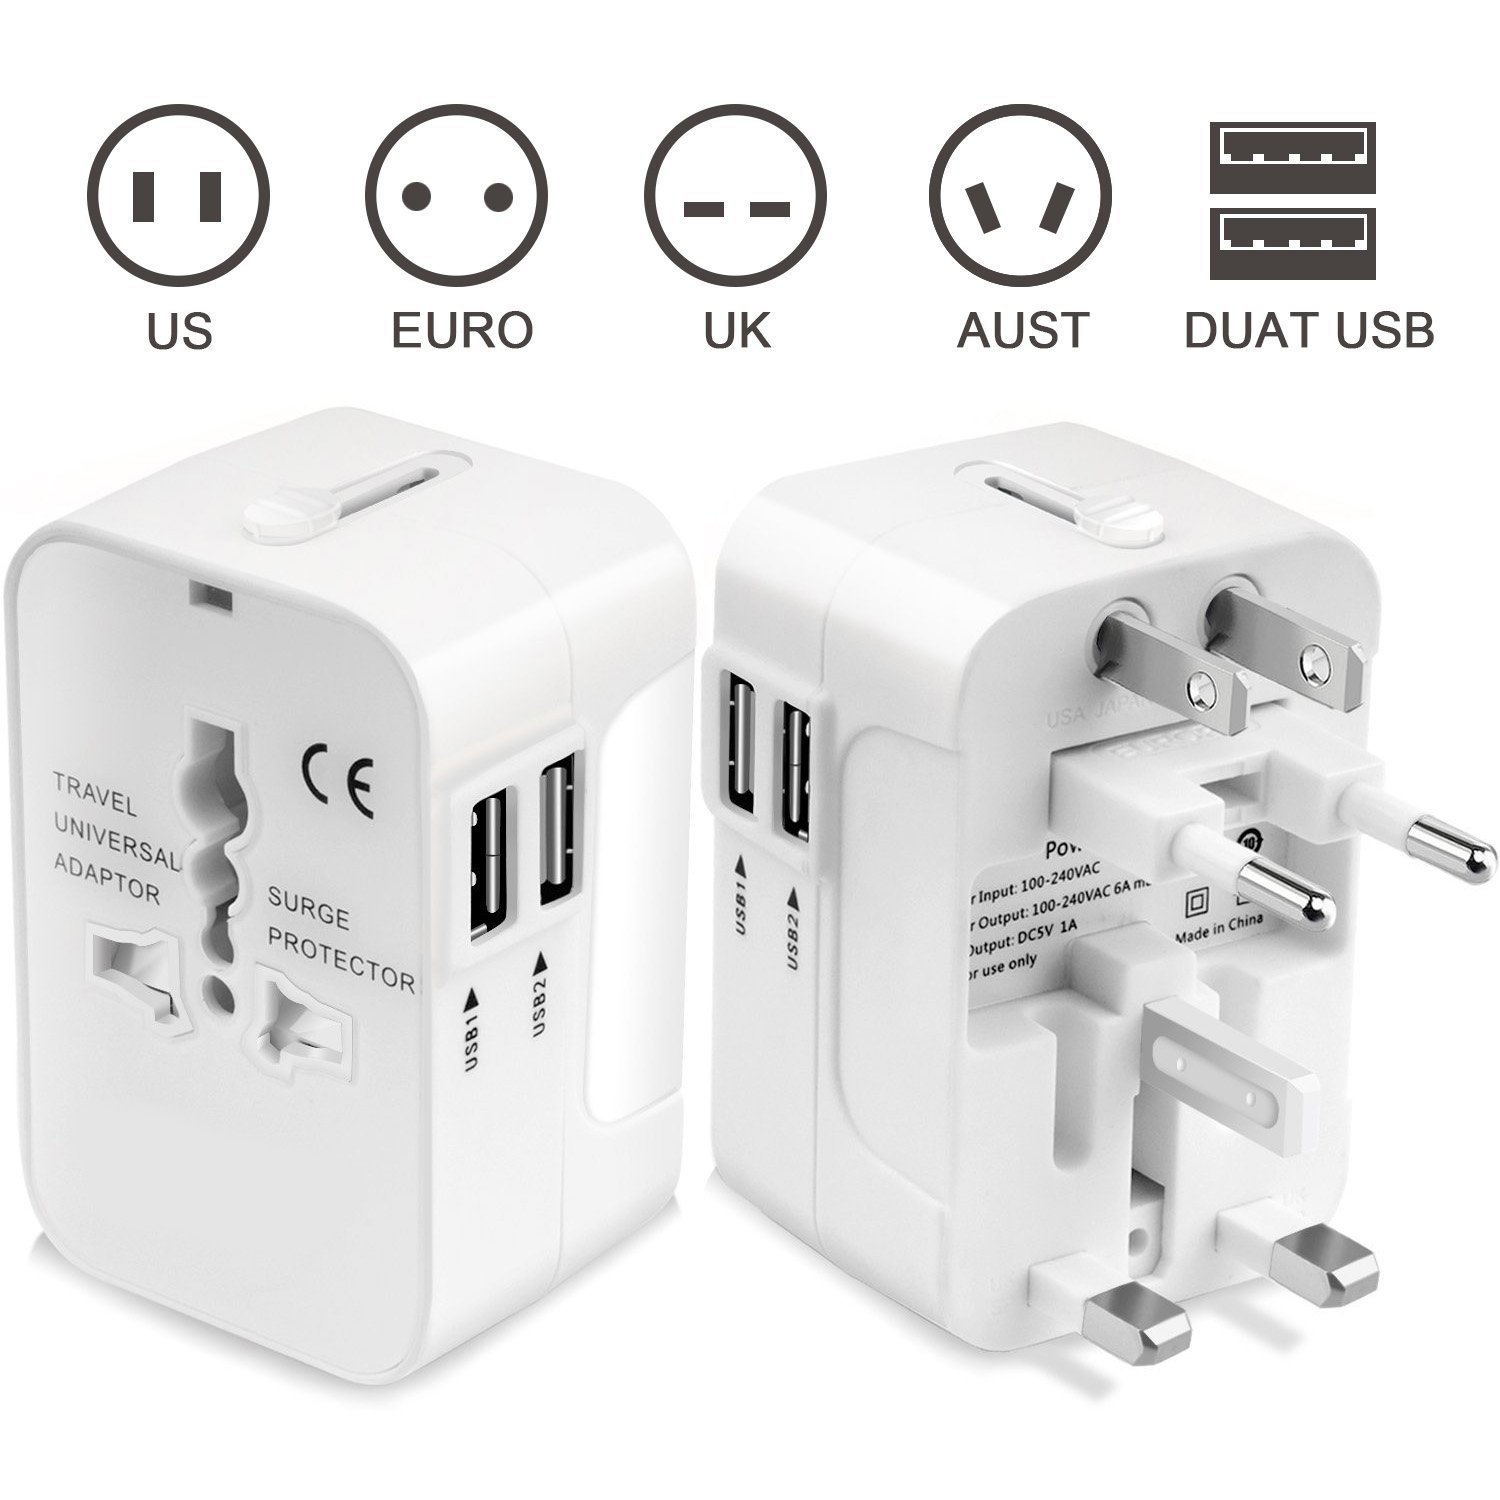 Universal Plug Adapter Worldwide Travel Plug Converter Adaptor All In One Wall Charger With Dual USB Charging Ports 2.1A Works 110 240V for EU UK US AU Plugs-Tempo- White